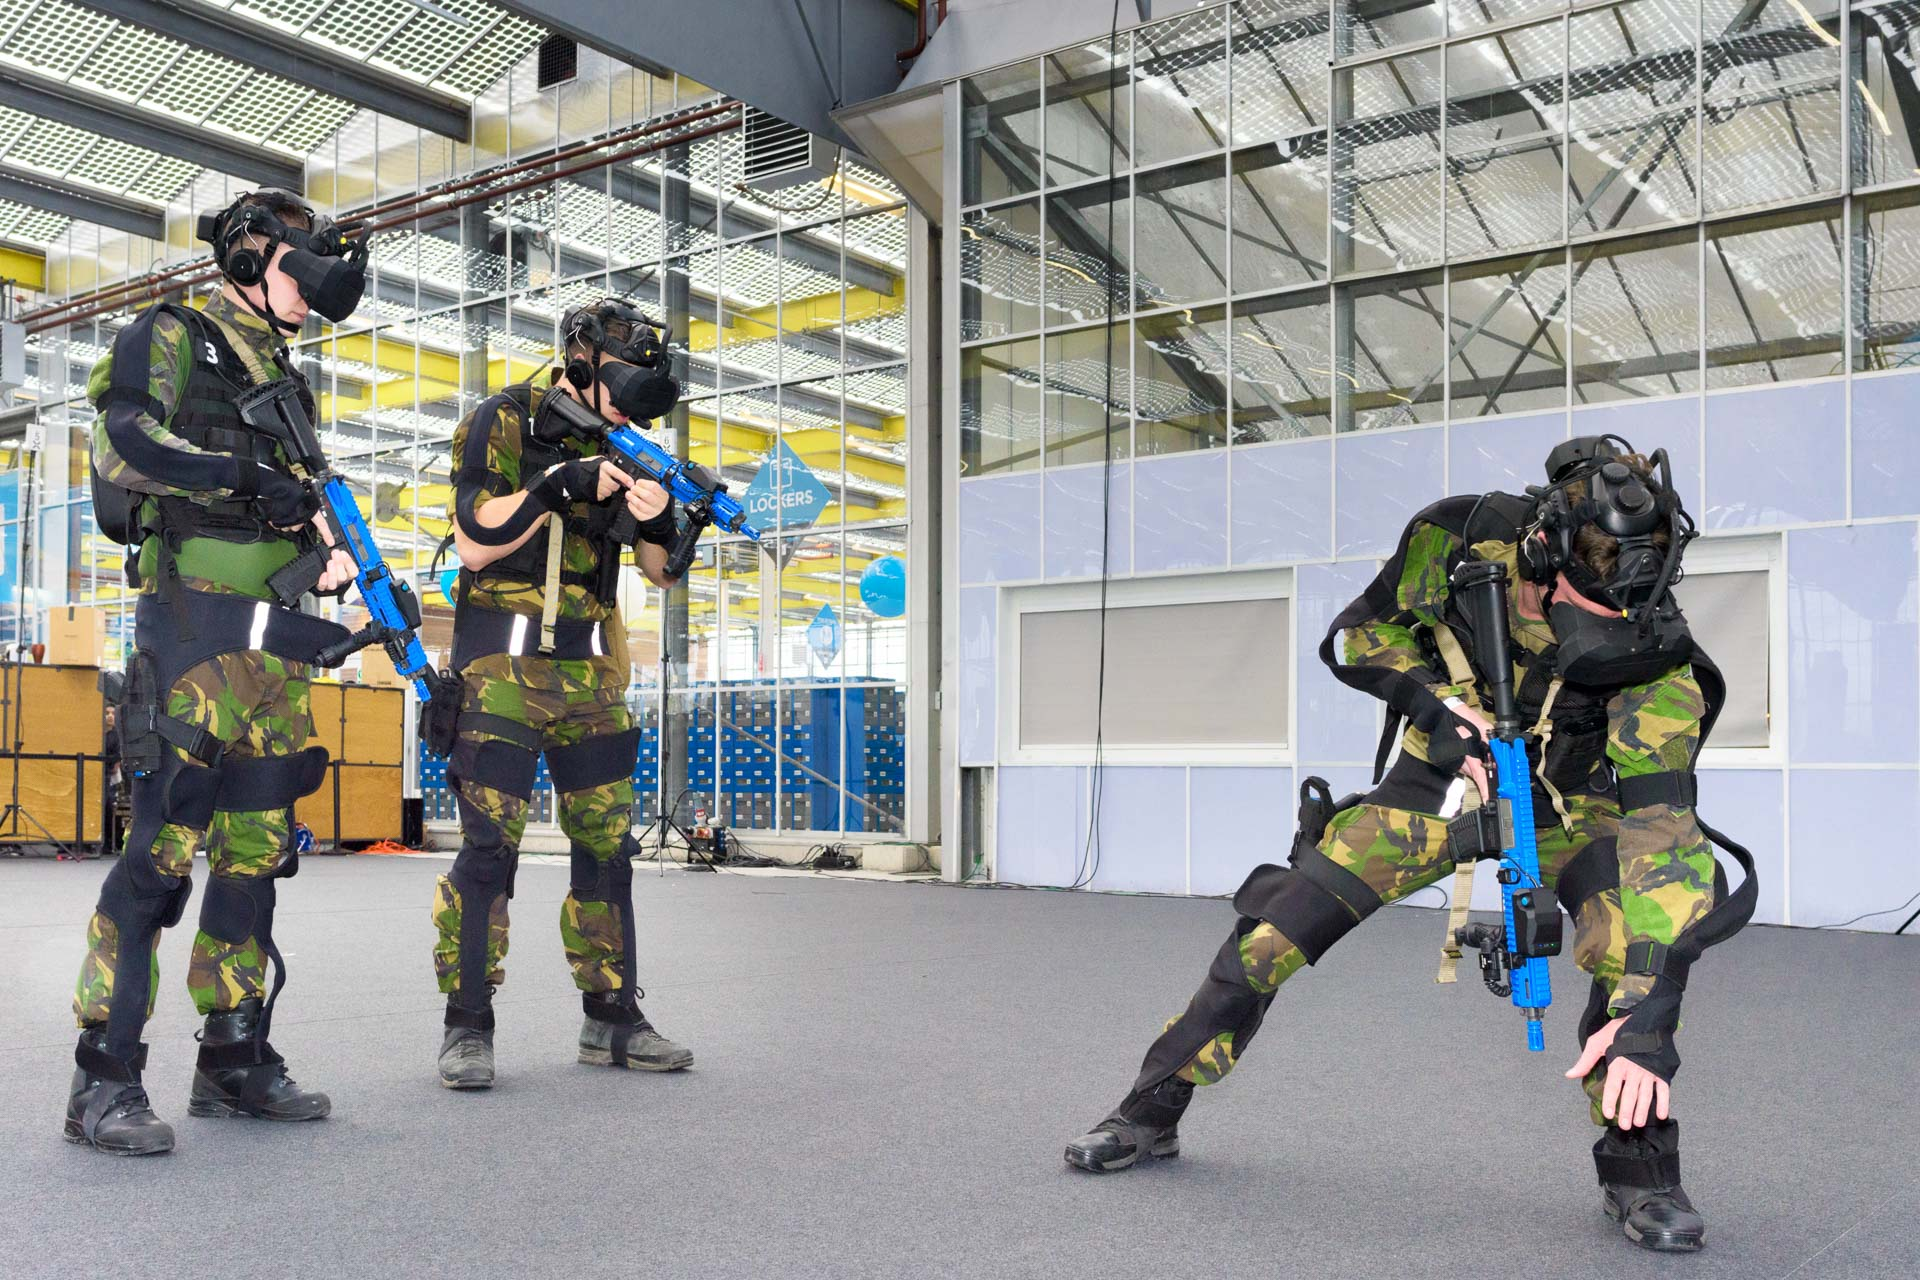 Actual Reality | defensie trainingssysteem SUIT (Small Unit Immersive Trainer) - Brightday 2019